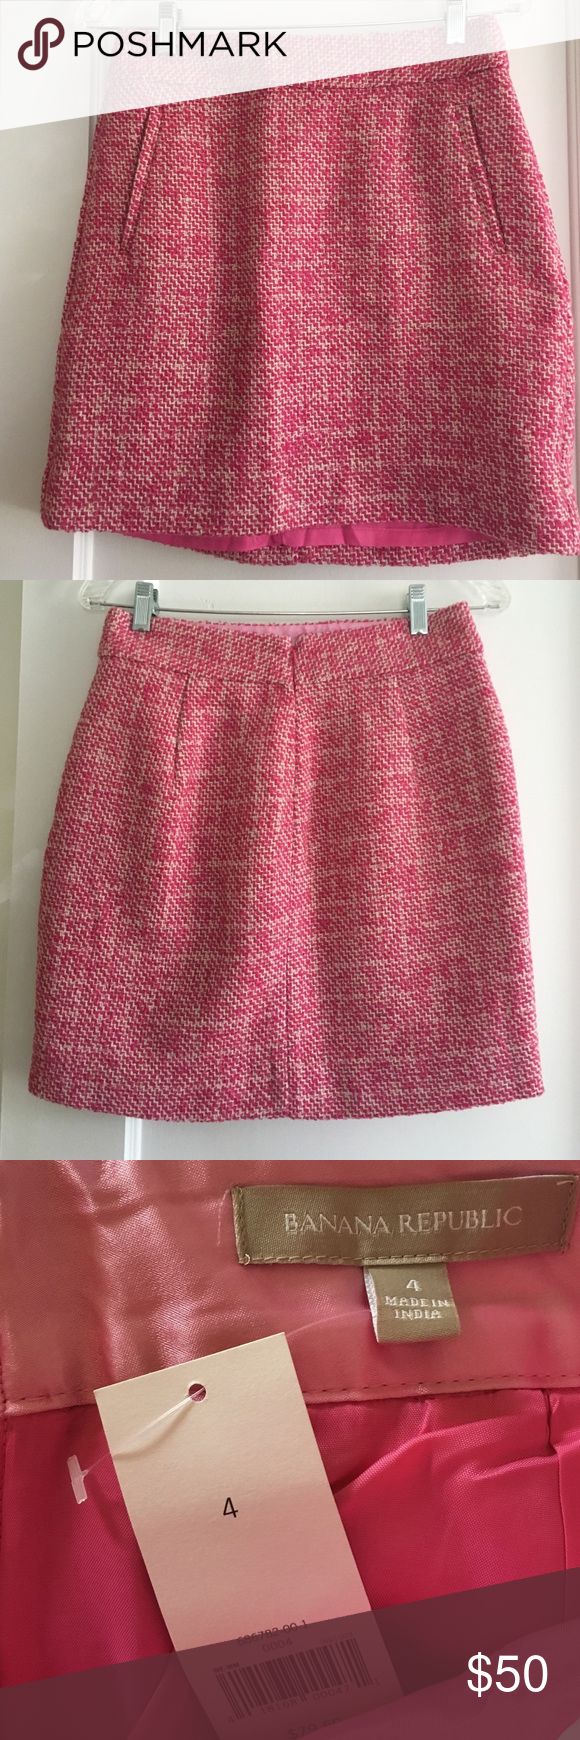 e2469c8f31 BANANA REPUBLIC pink tweed mini skirt -4-NWT! NWT! Banana Republic pink and  white tweed mini skirt. Faux front pockets. Fully lined, concealed center  back ...